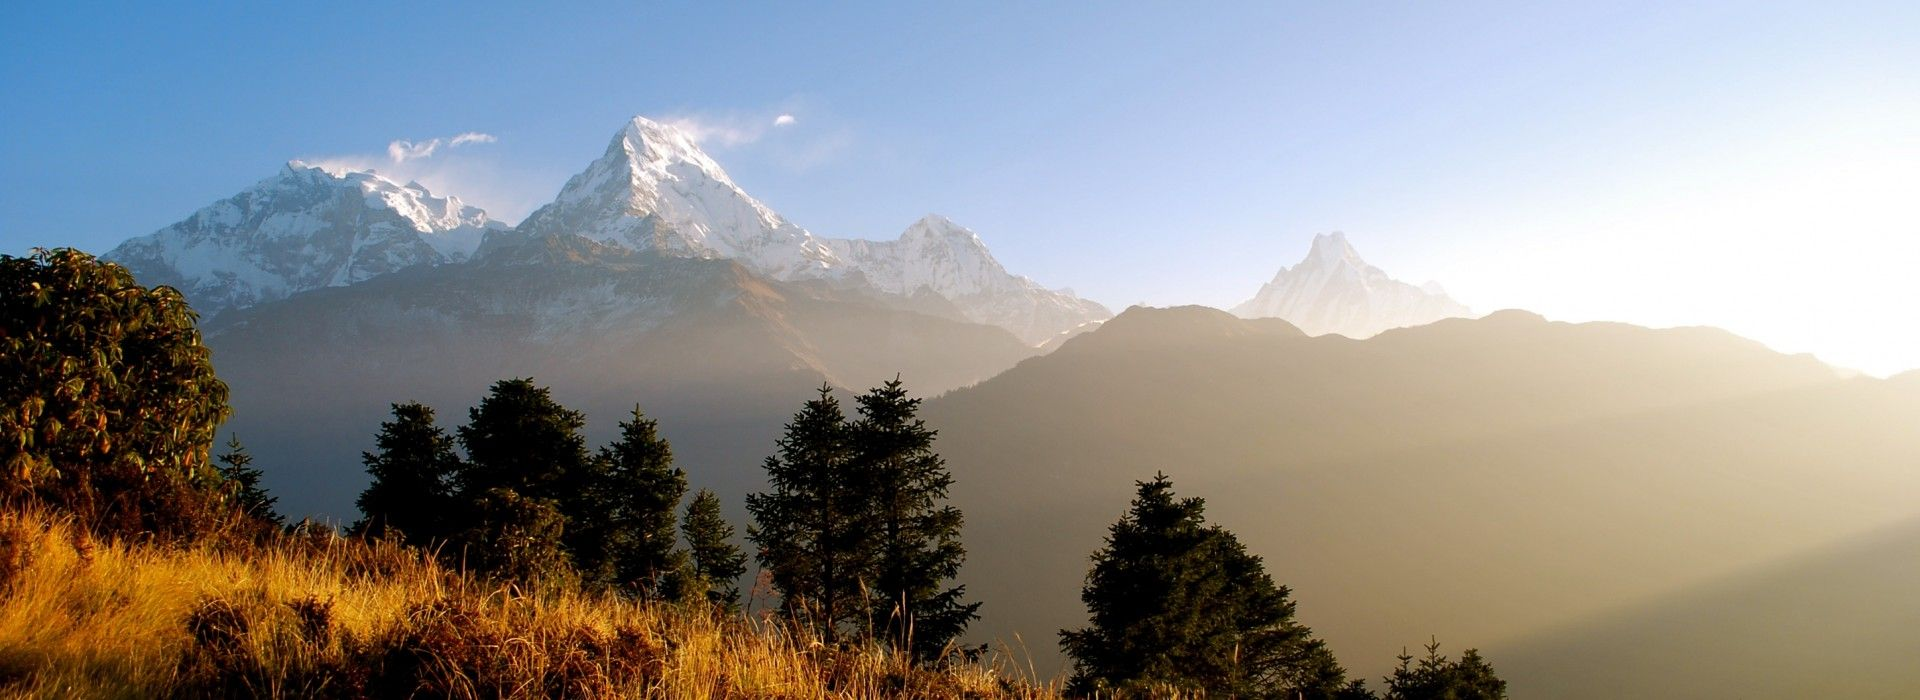 Mountains Tours in Nepal